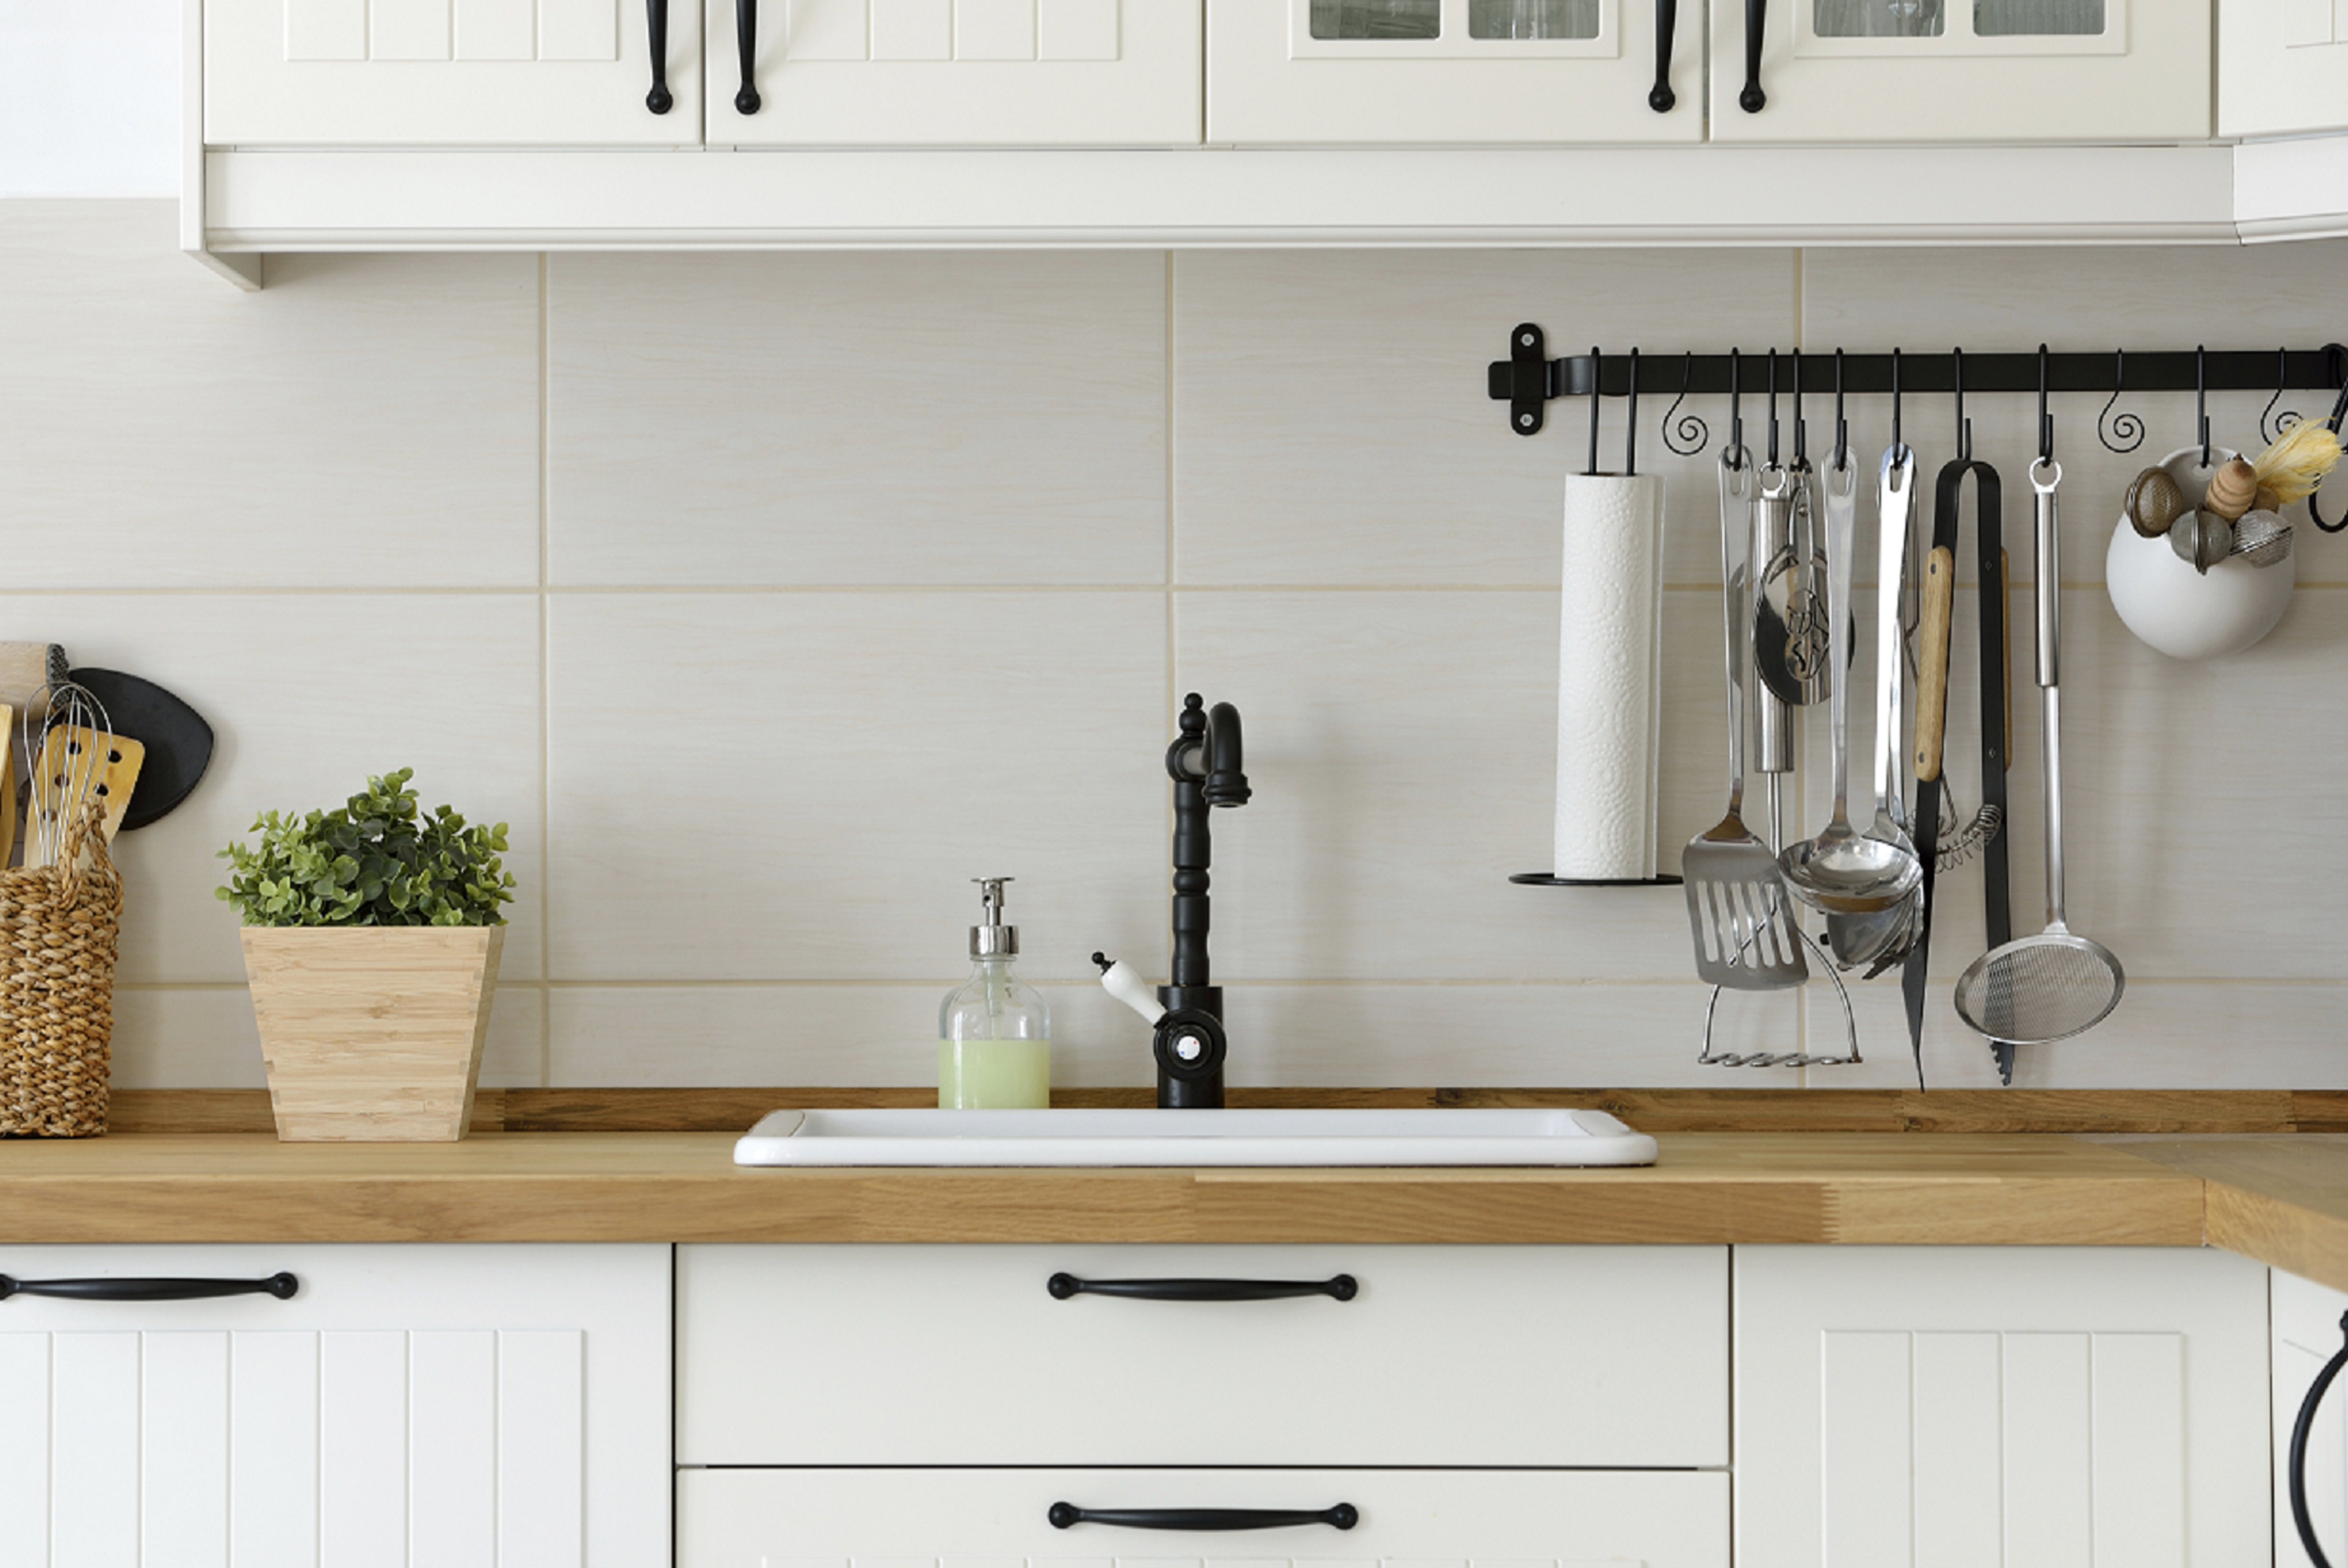 How to achieve a Scandinvian style kitchen